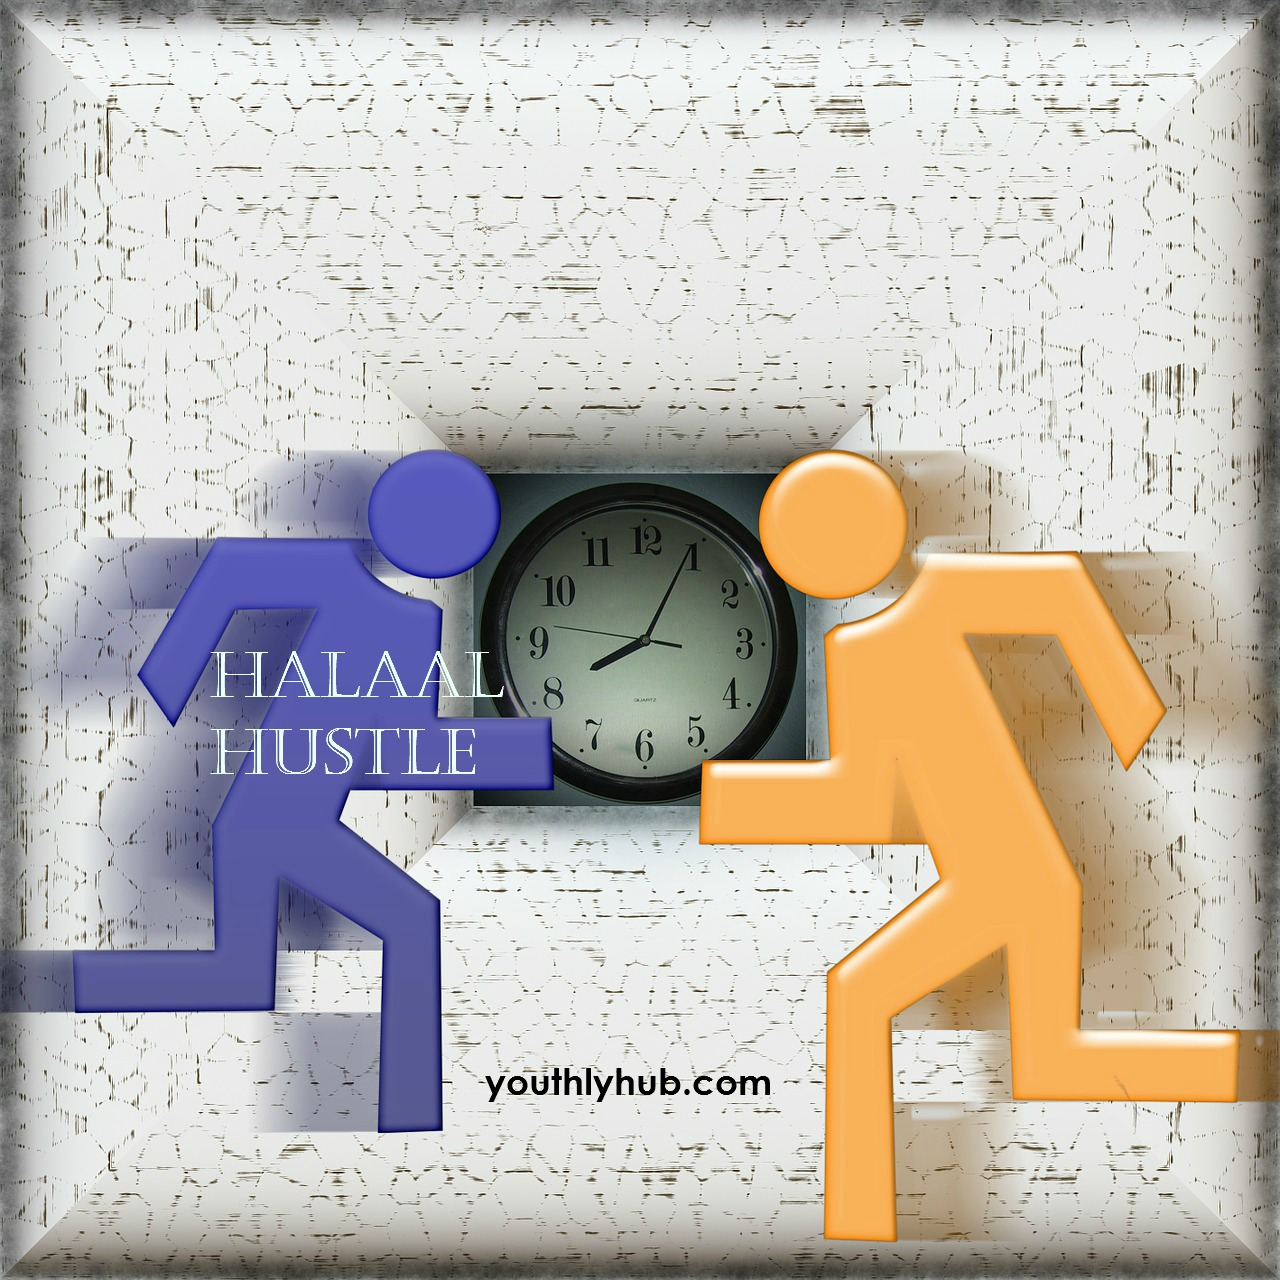 image post on halaal hustle series